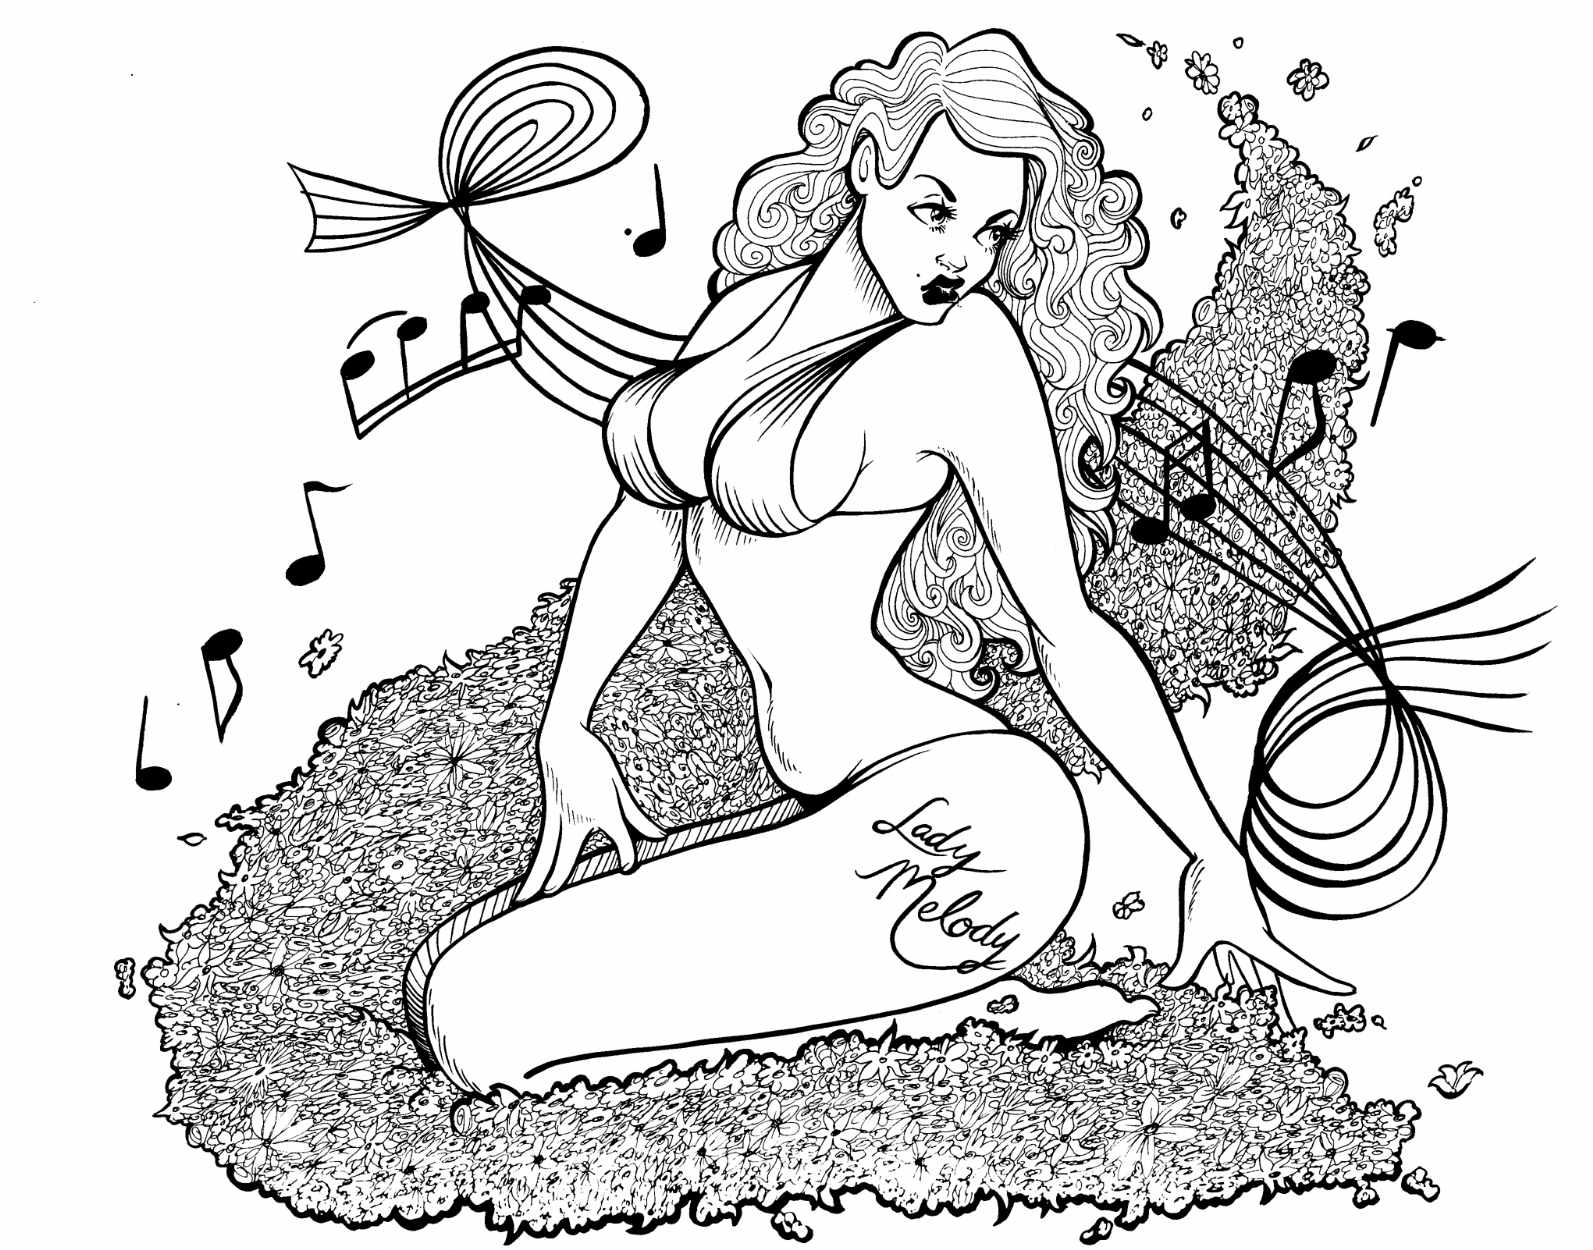 Tattoo pin up girl design 0